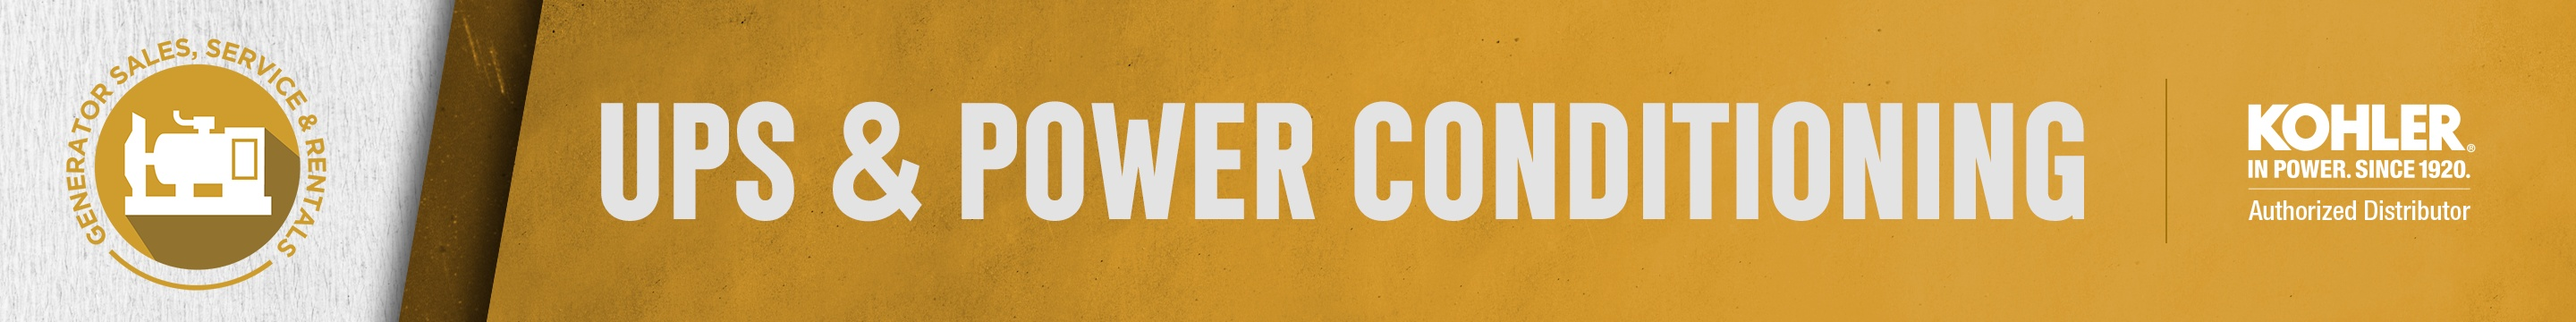 UPS & Power Conditioning